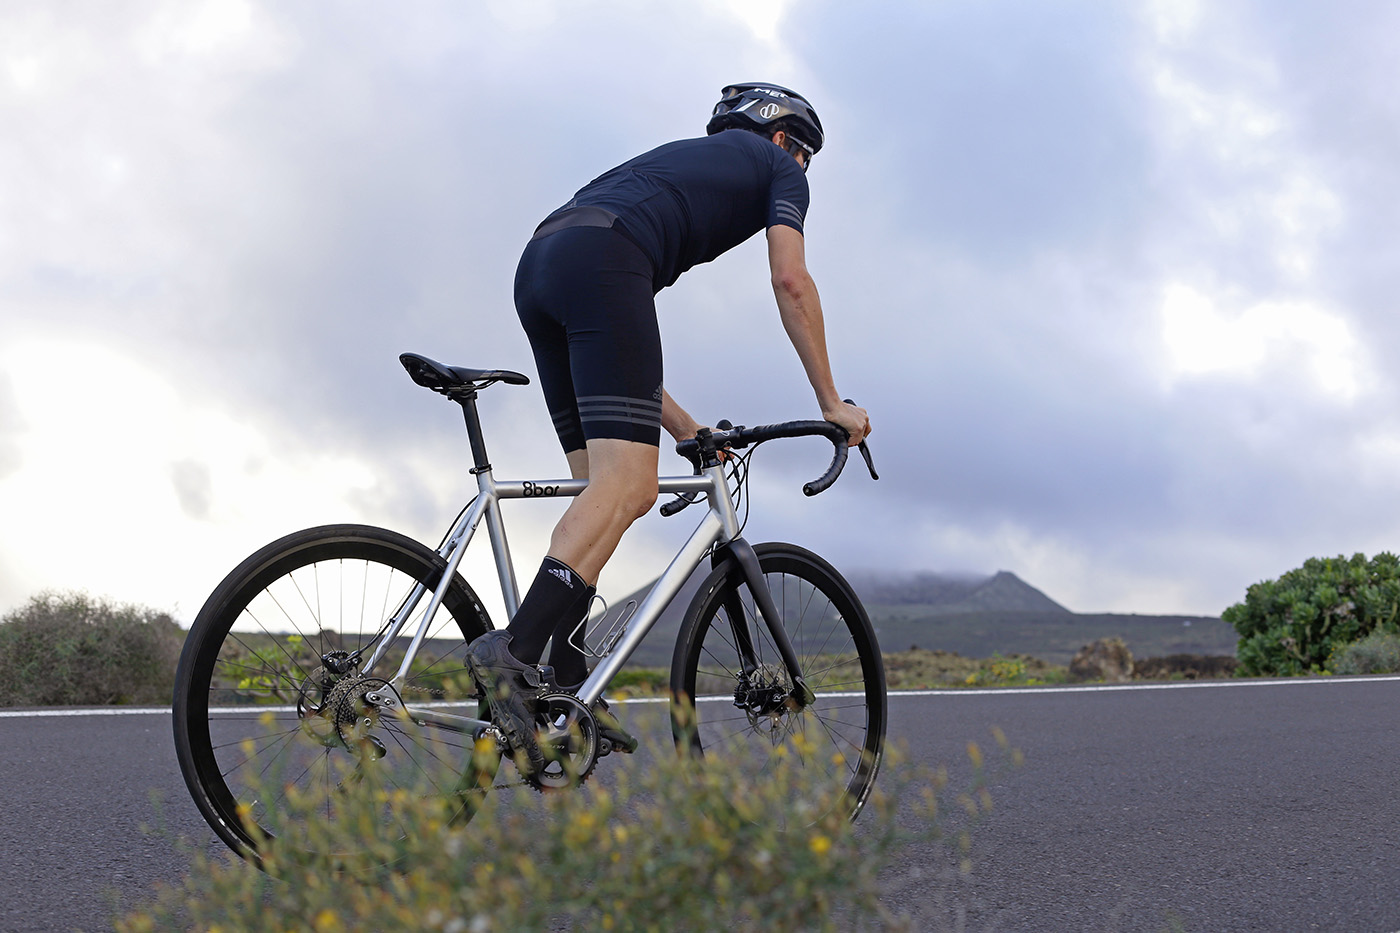 8bar-mitte-road-bike-raw-lanzarote_3553x_s